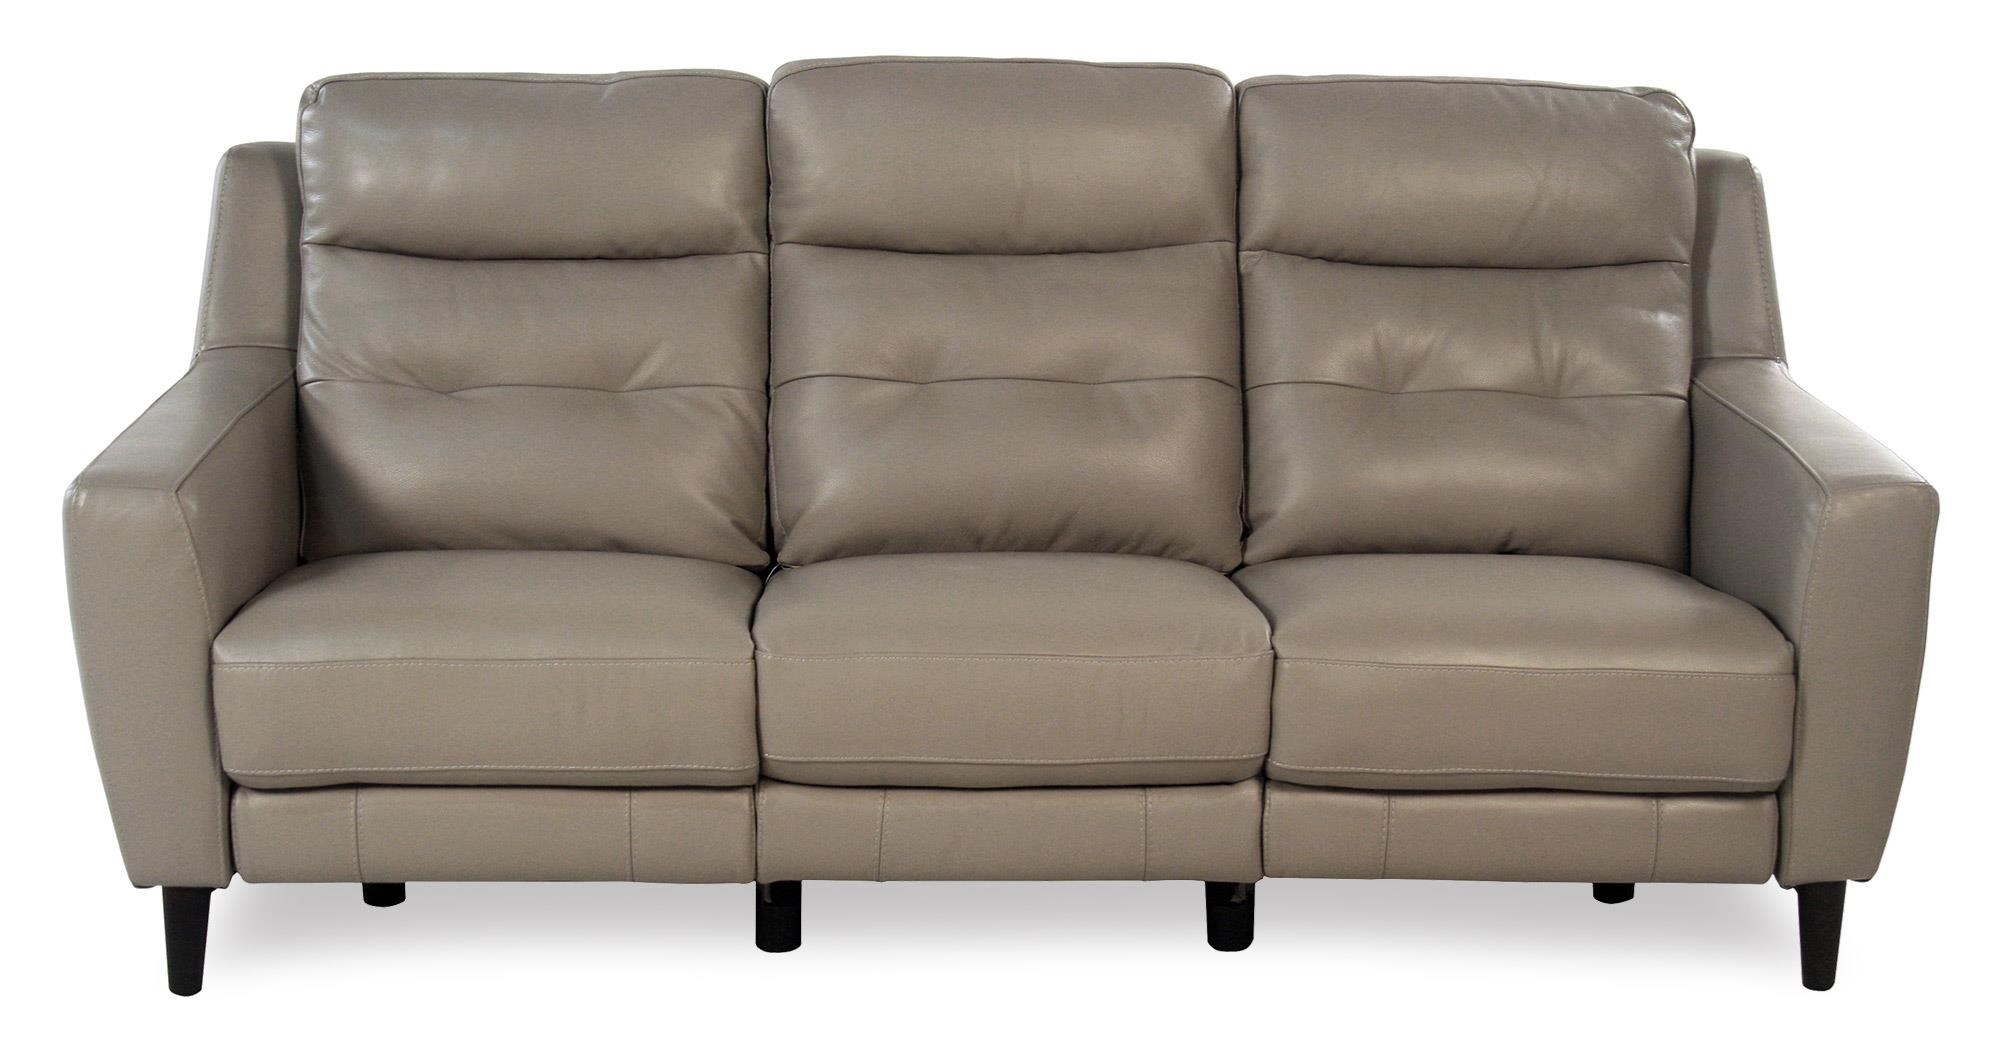 Giovani Fusion Power Reclining Leather Sofa - Item Number: 10859-3S2UA-NC282